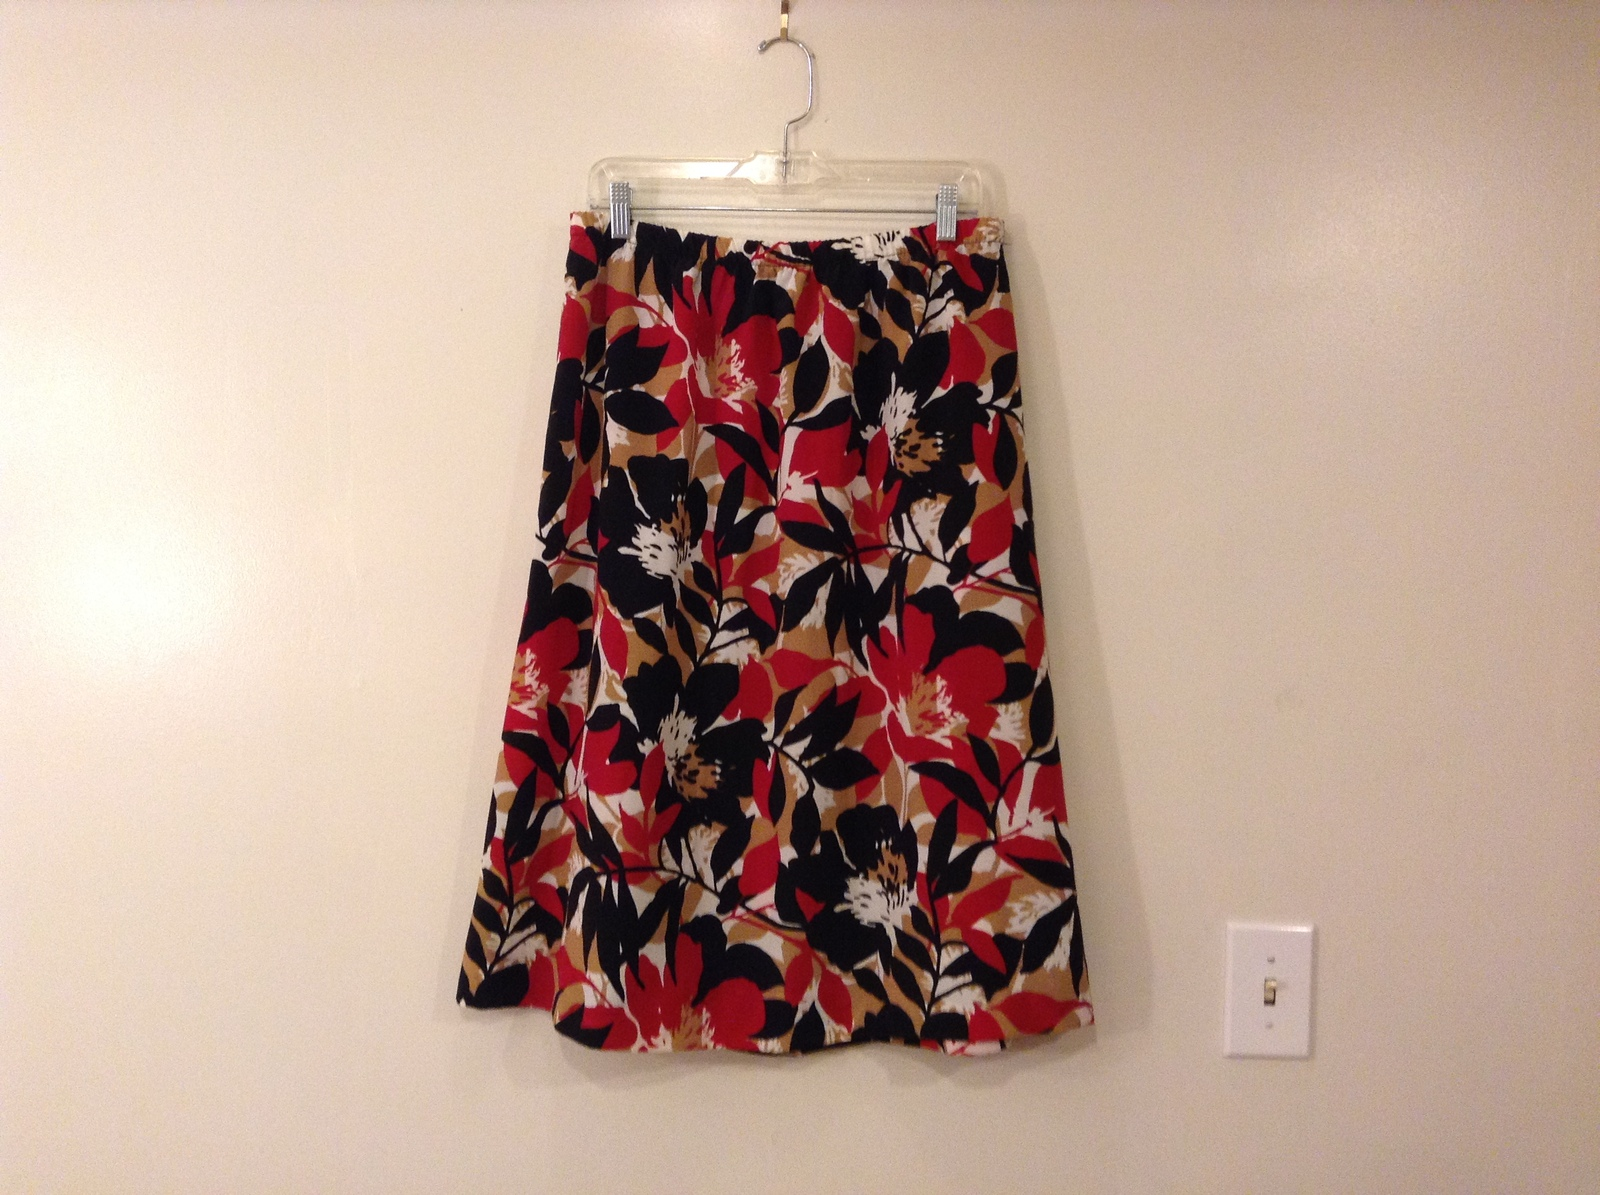 Floral Pattern Black Red White Beige Elastic Waist Skirt, size 16, unlined